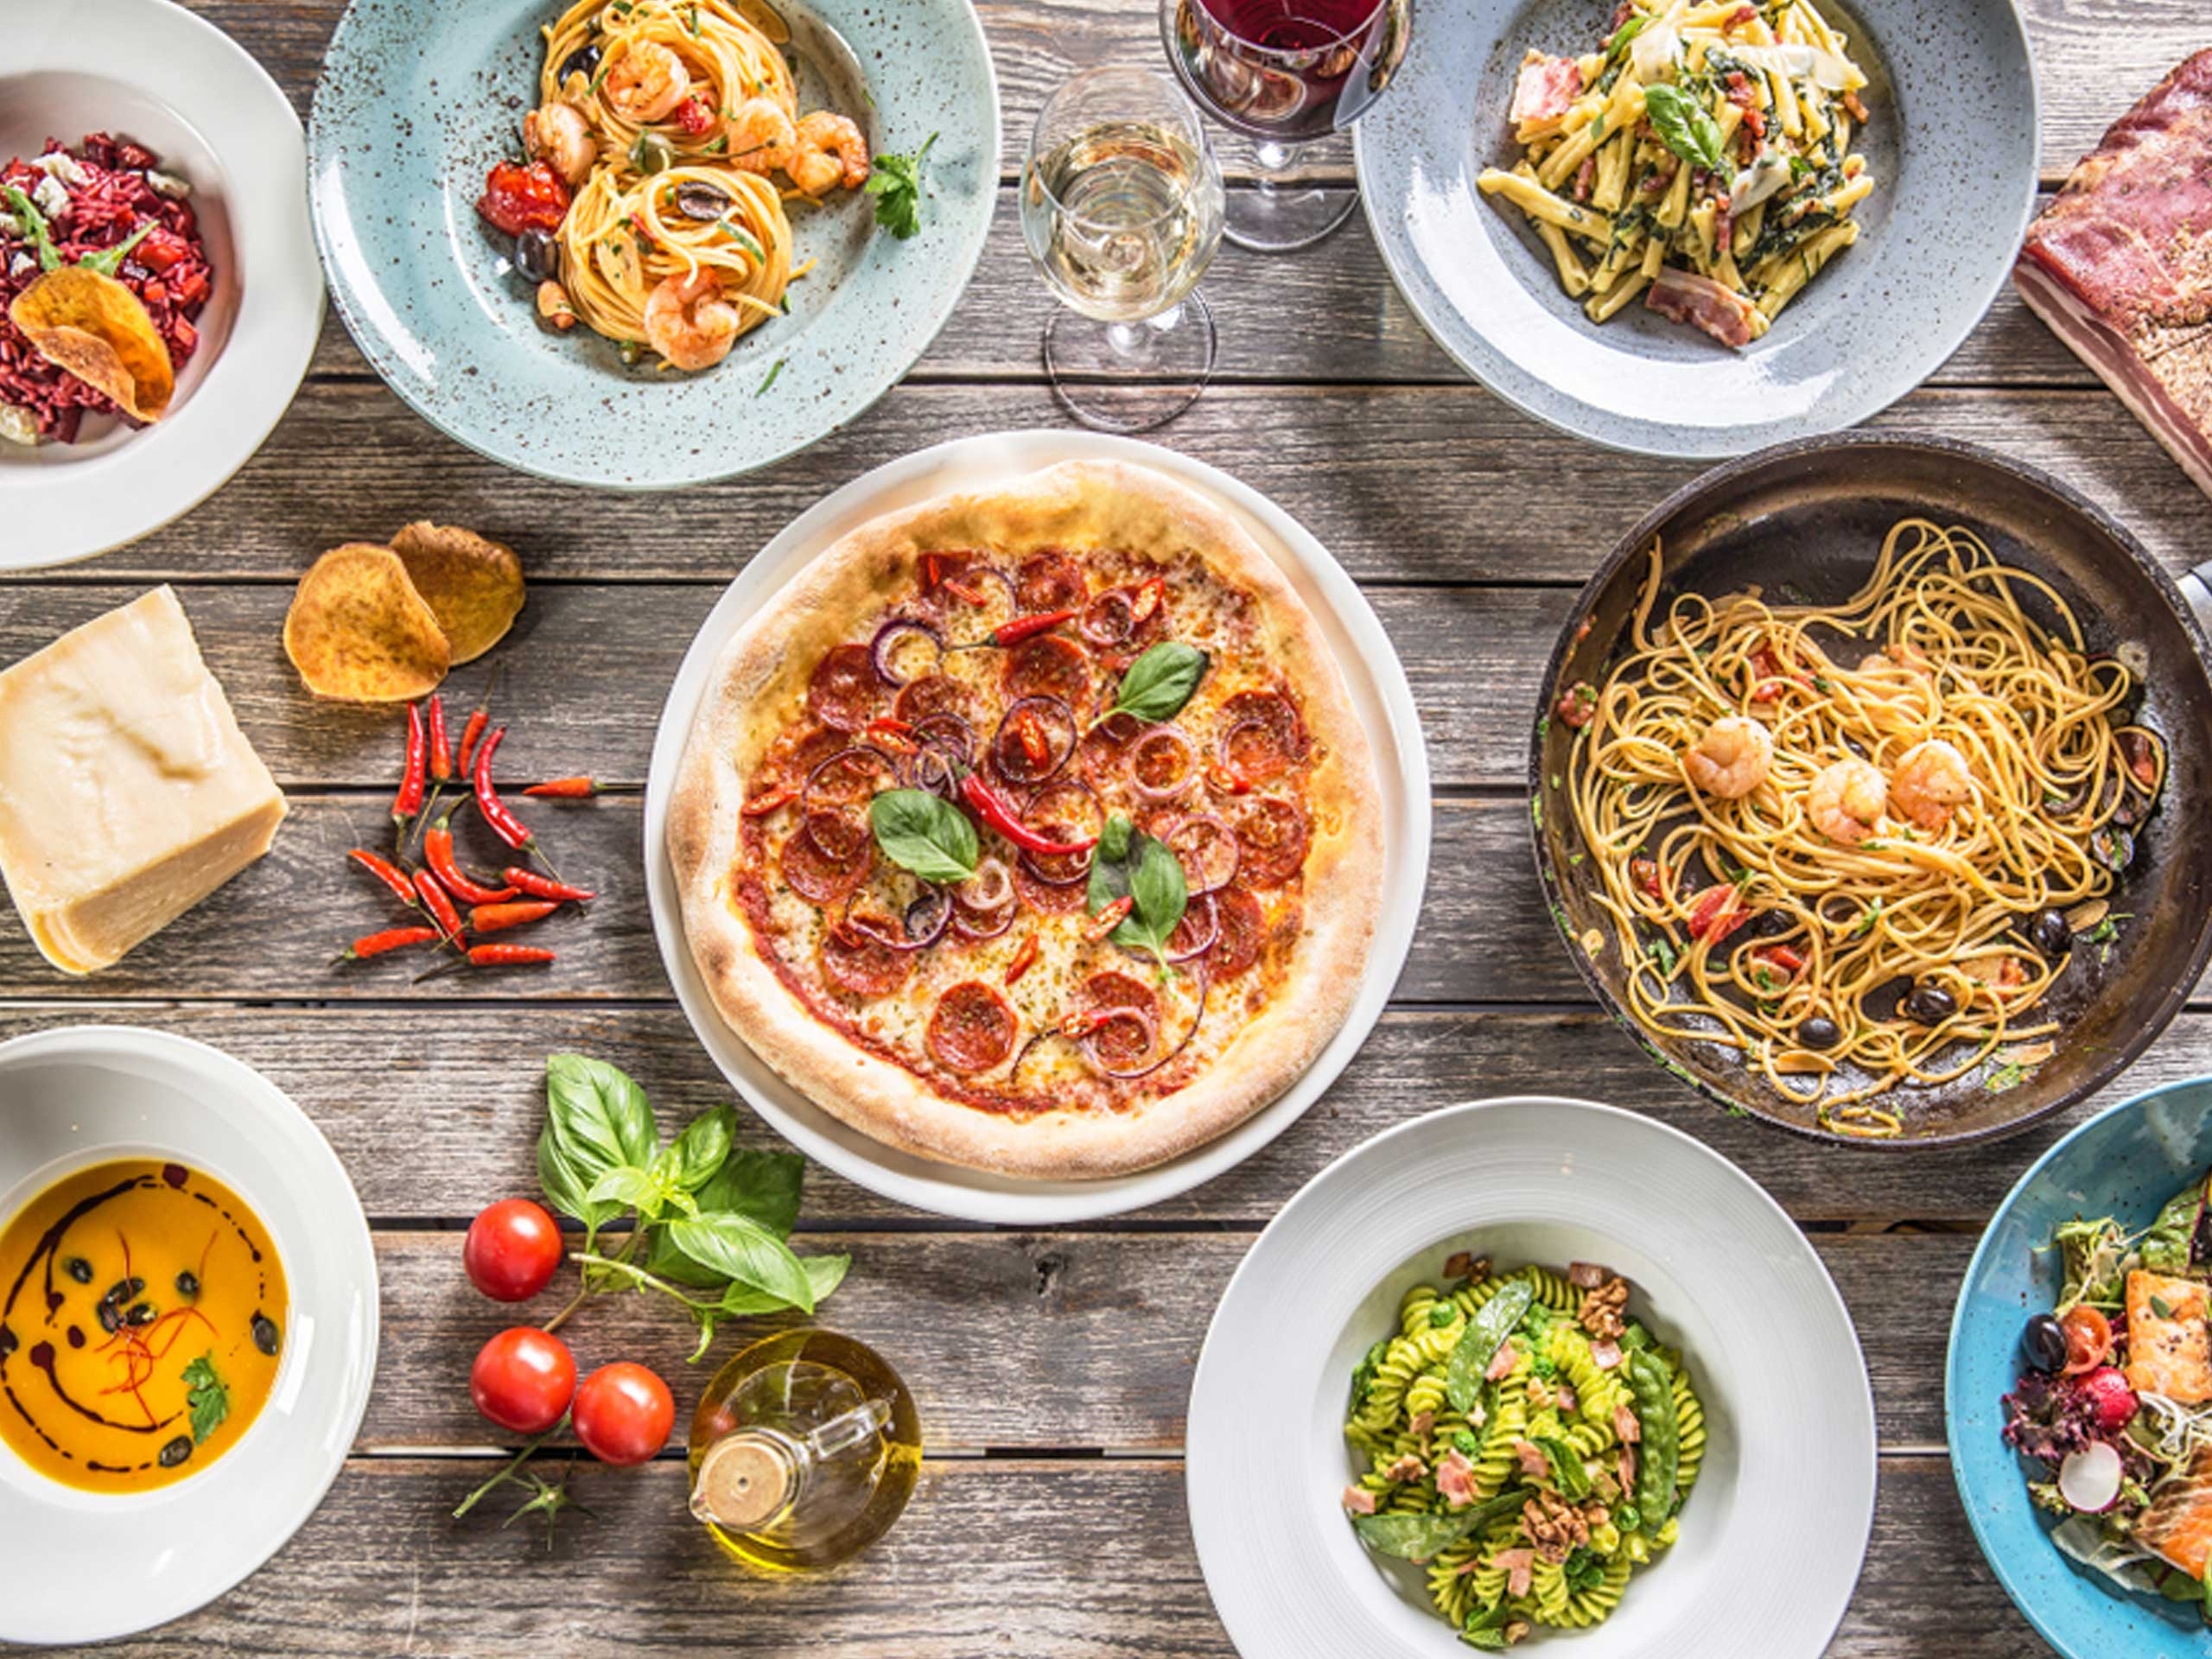 Top View Full Table of Italian Food Meals